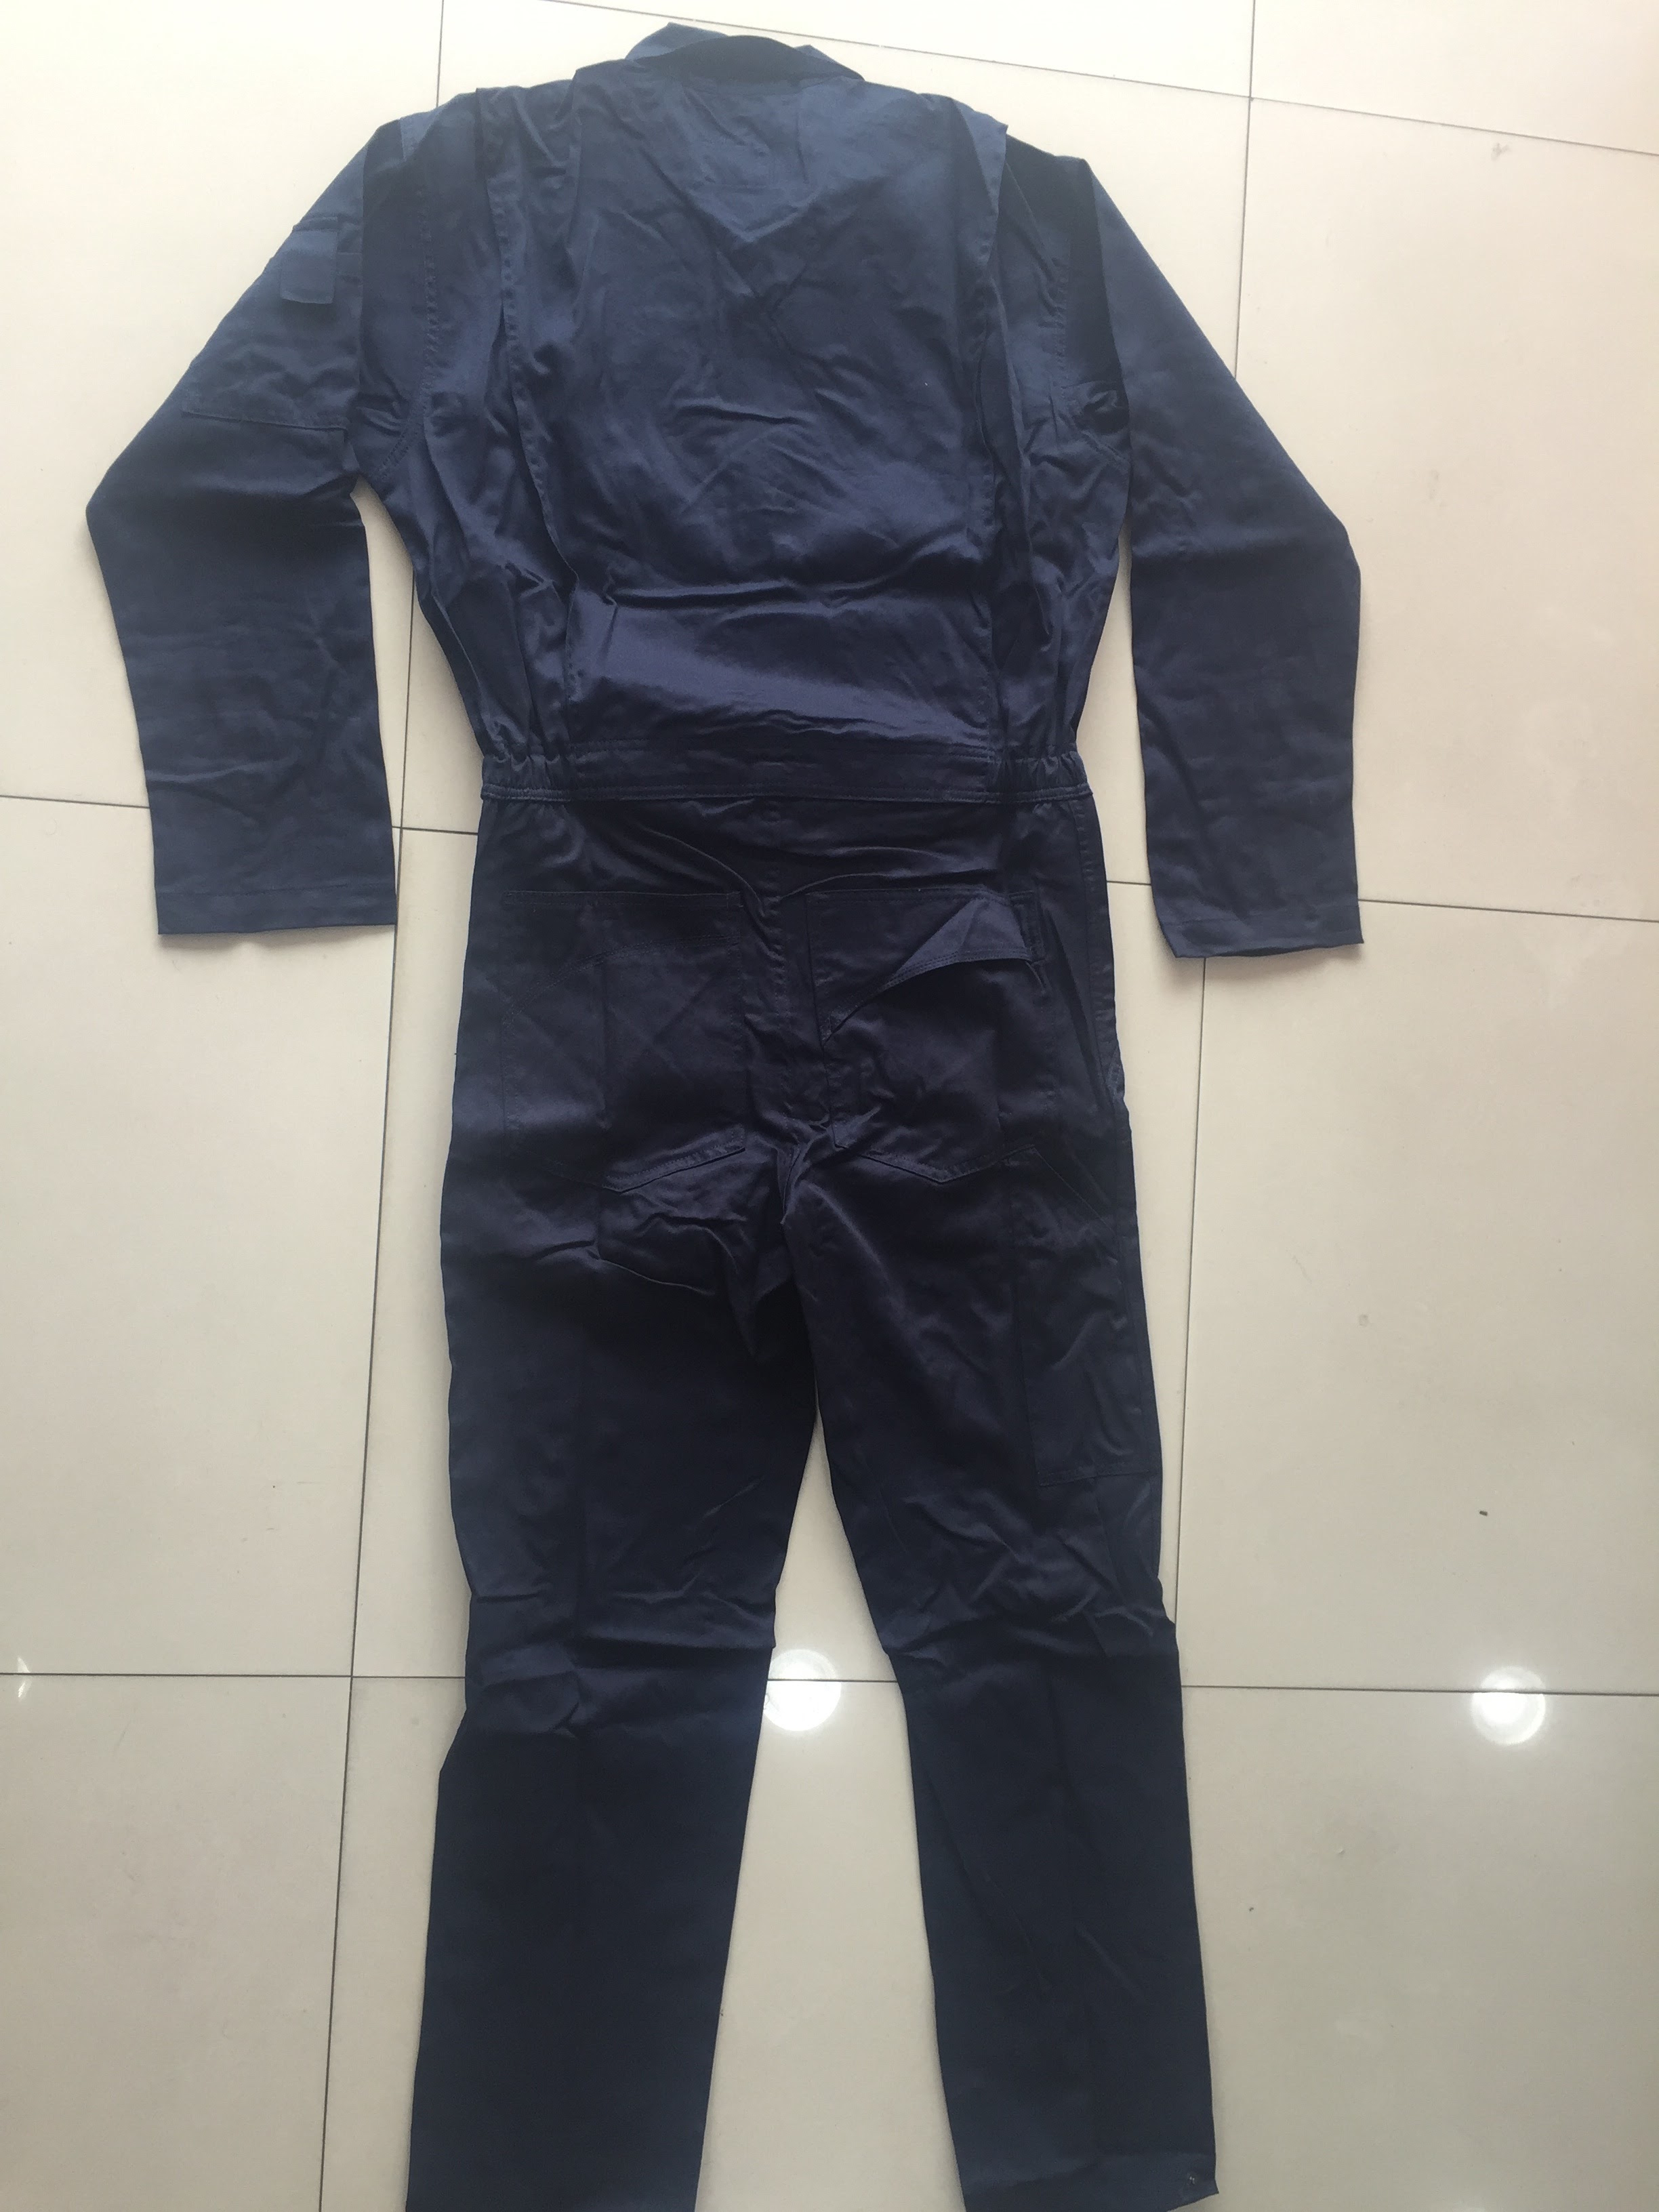 Branded coveralls over all backside view - Navy blue